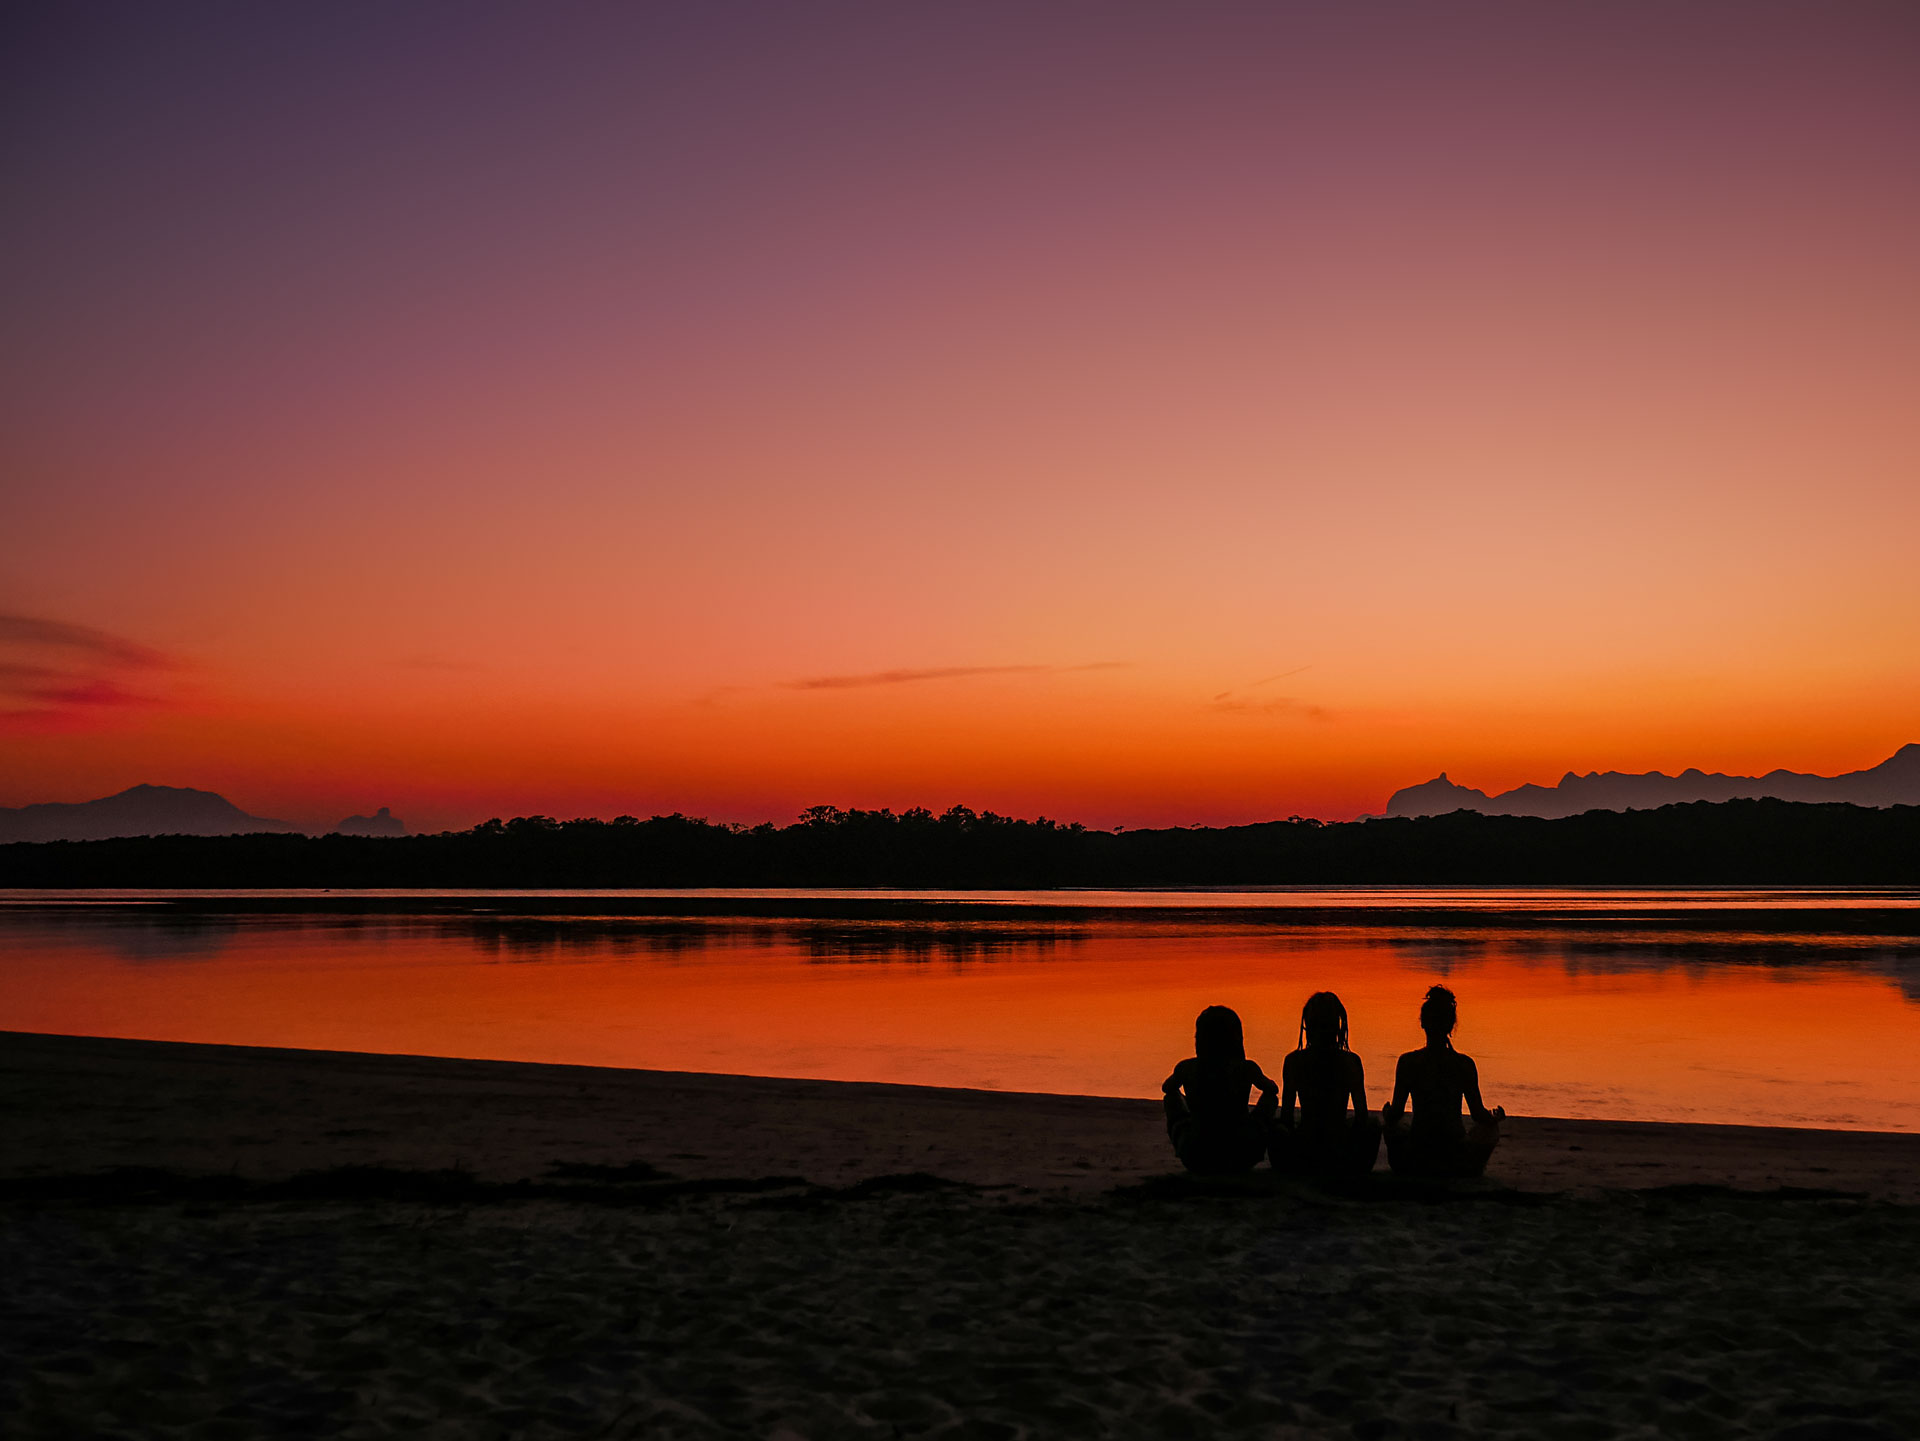 Three friends meditating in front of river with colorful sunset sky in Barra do Una, Brazil